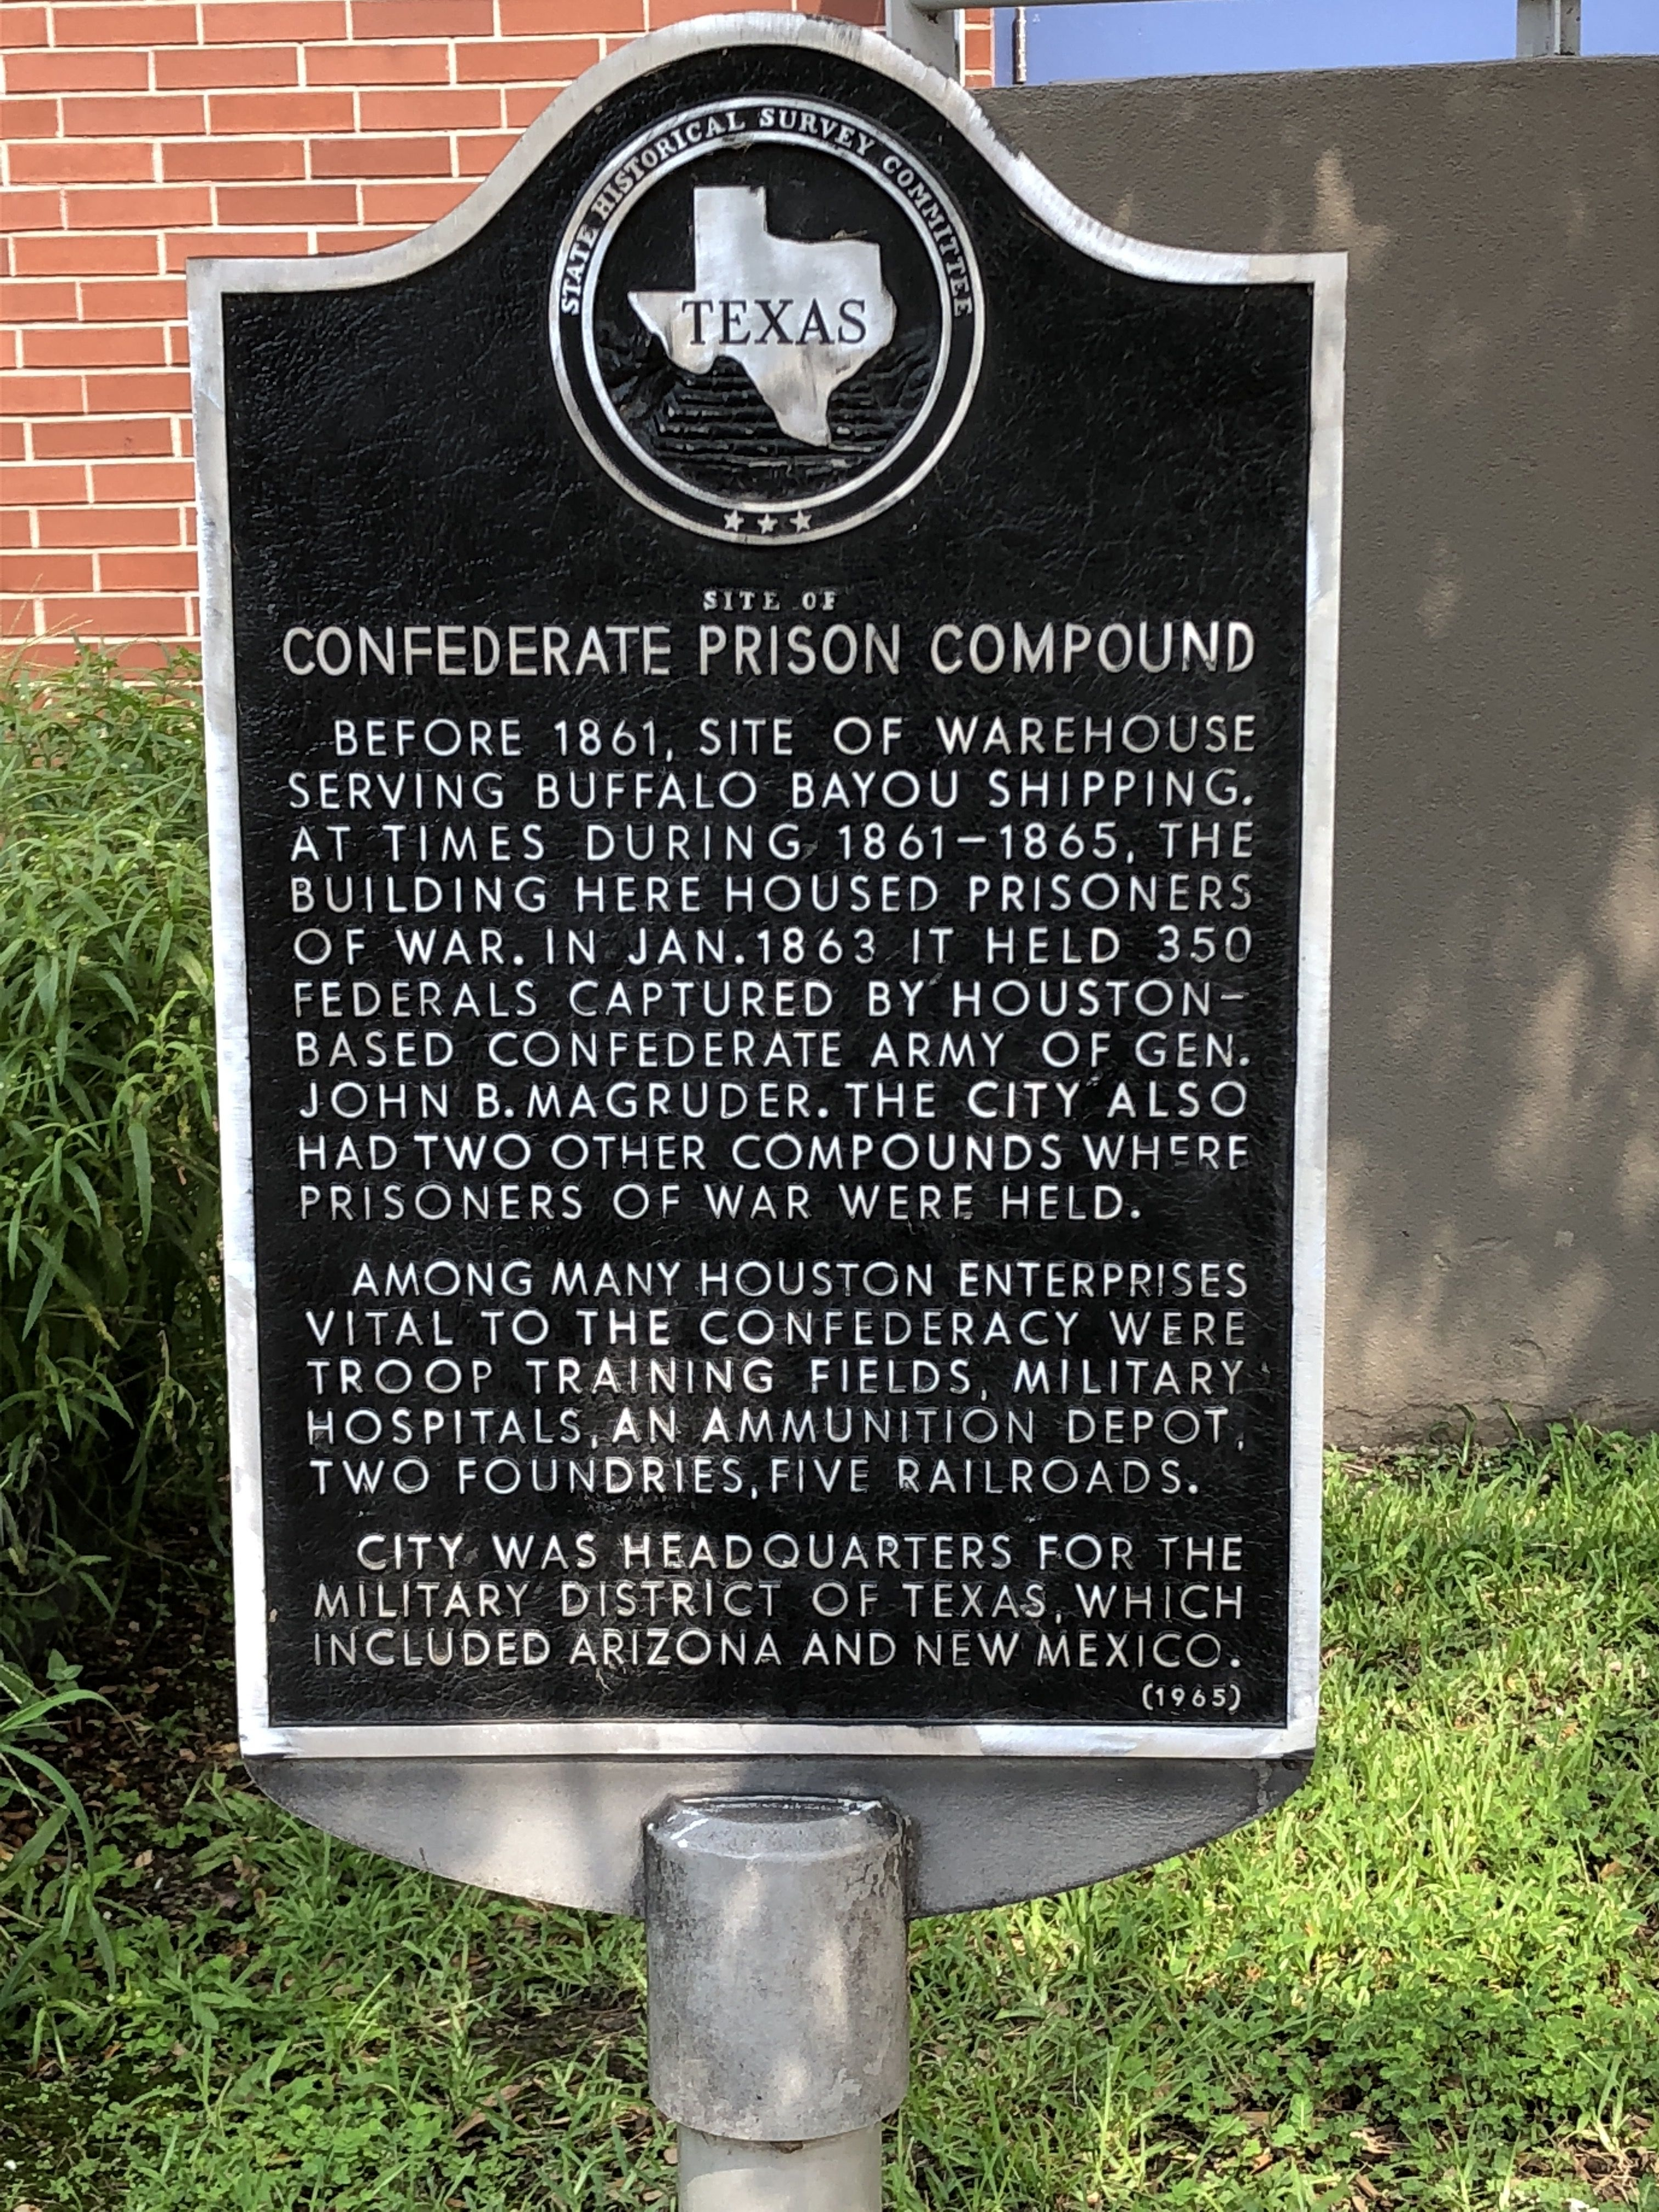 Site of Confederate Prison Compound Marker